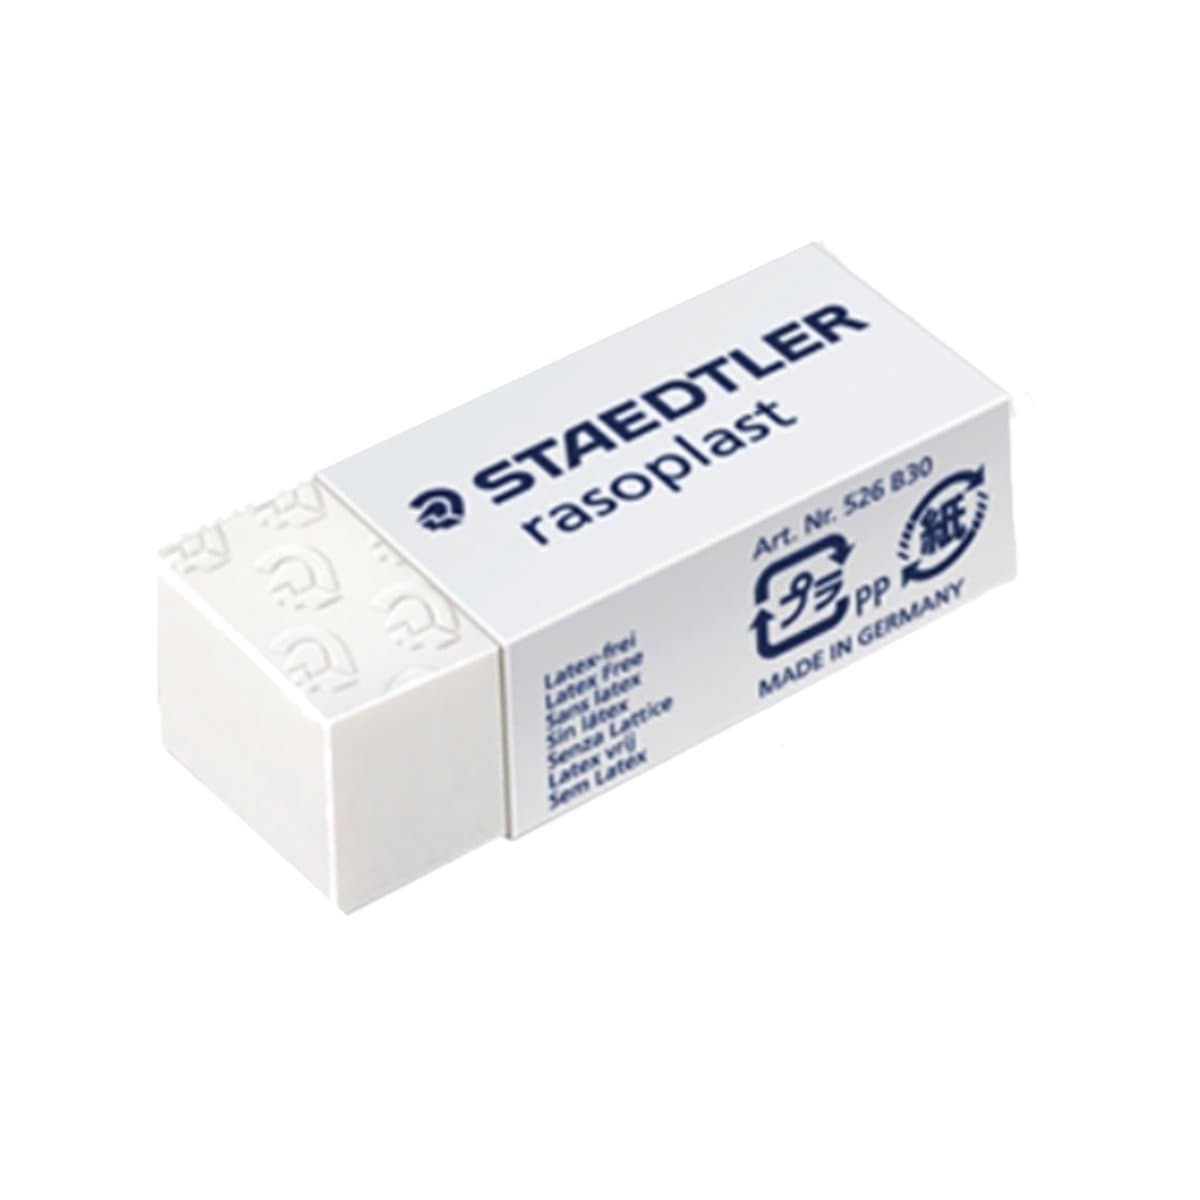 Staedtler Rasoplast Eraser 43x19x13mm, 526-B30, Medium